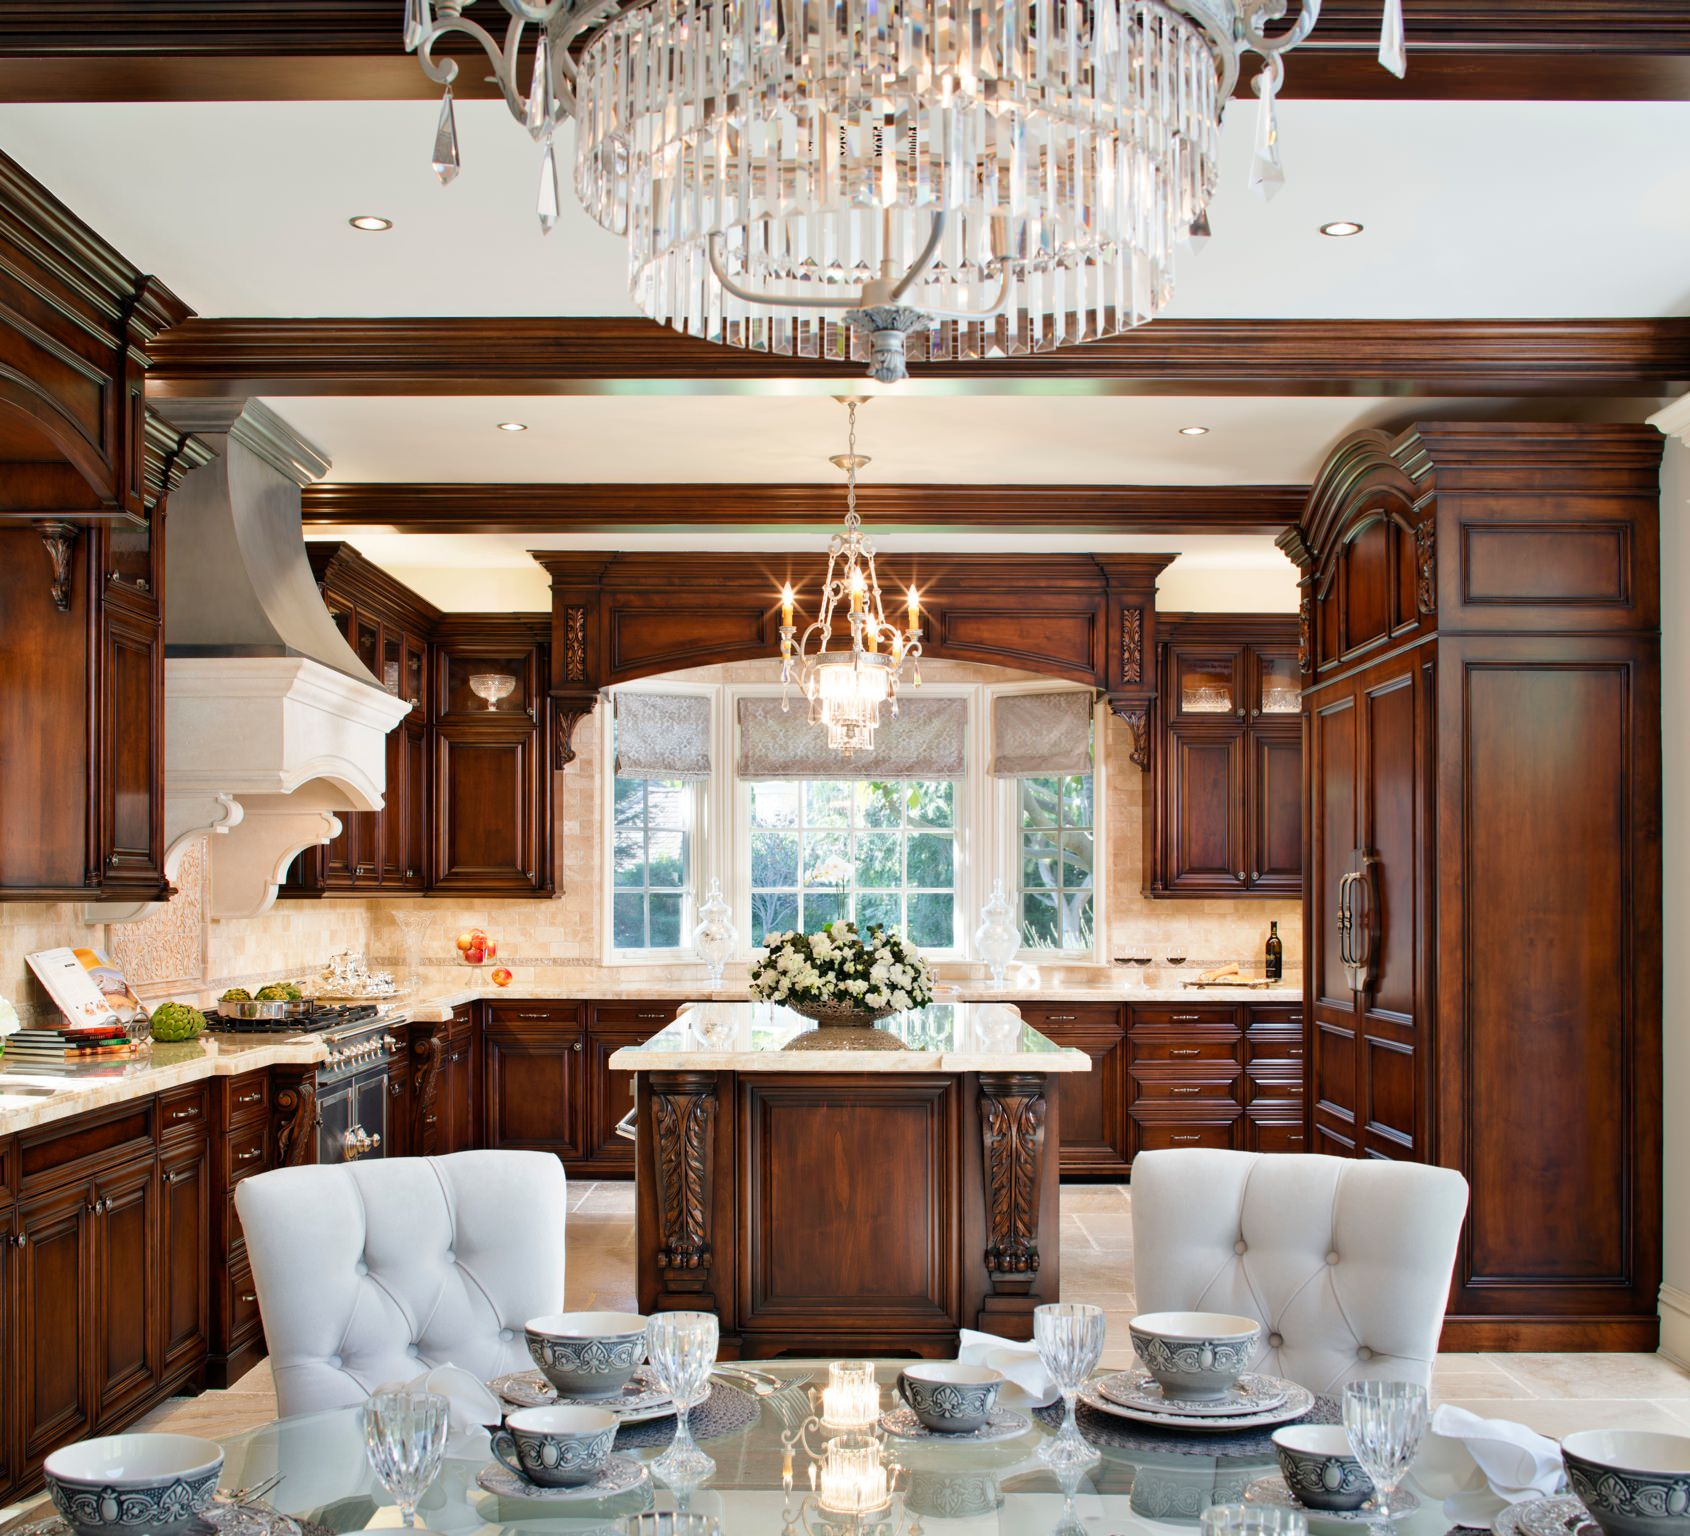 French Provincial Kitchen Design